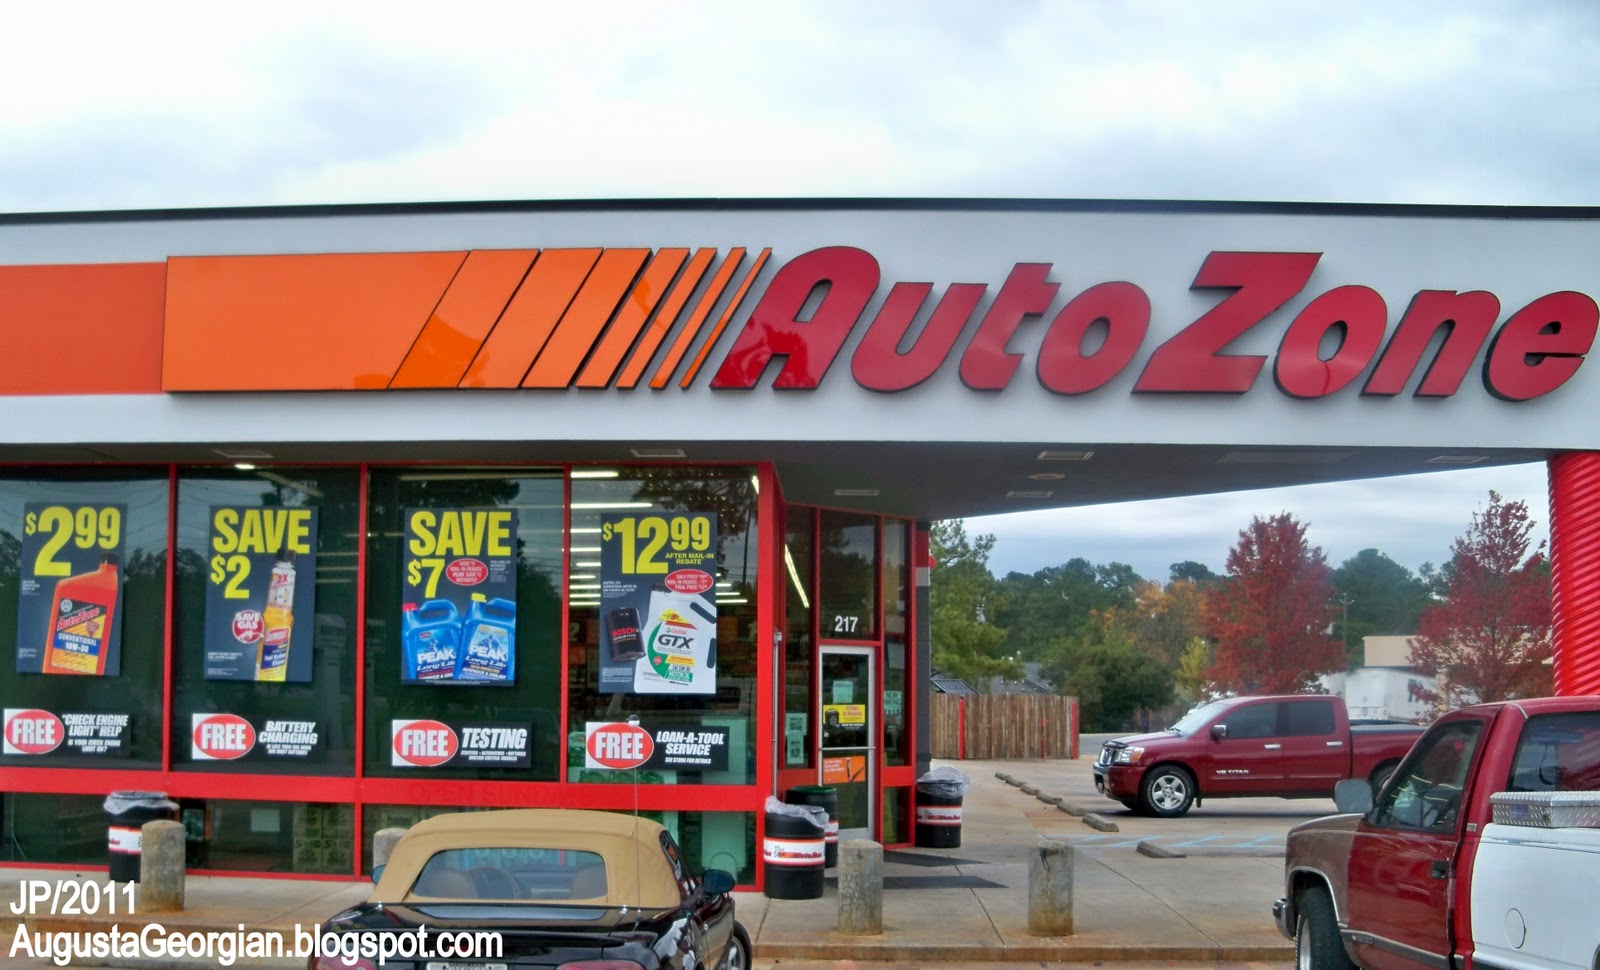 AutoZone is the automotive parts and accessories sales and distribution leader within the United States, Puerto Rico, Brazil, and Mexico. Each AutoZone store handles a wide assortment of automotive products for all kinds of vehicles, SUV's, Trucks and even light Cargo trucks, including both new and remanufactured parts, maintenance products, accessories, and other products.